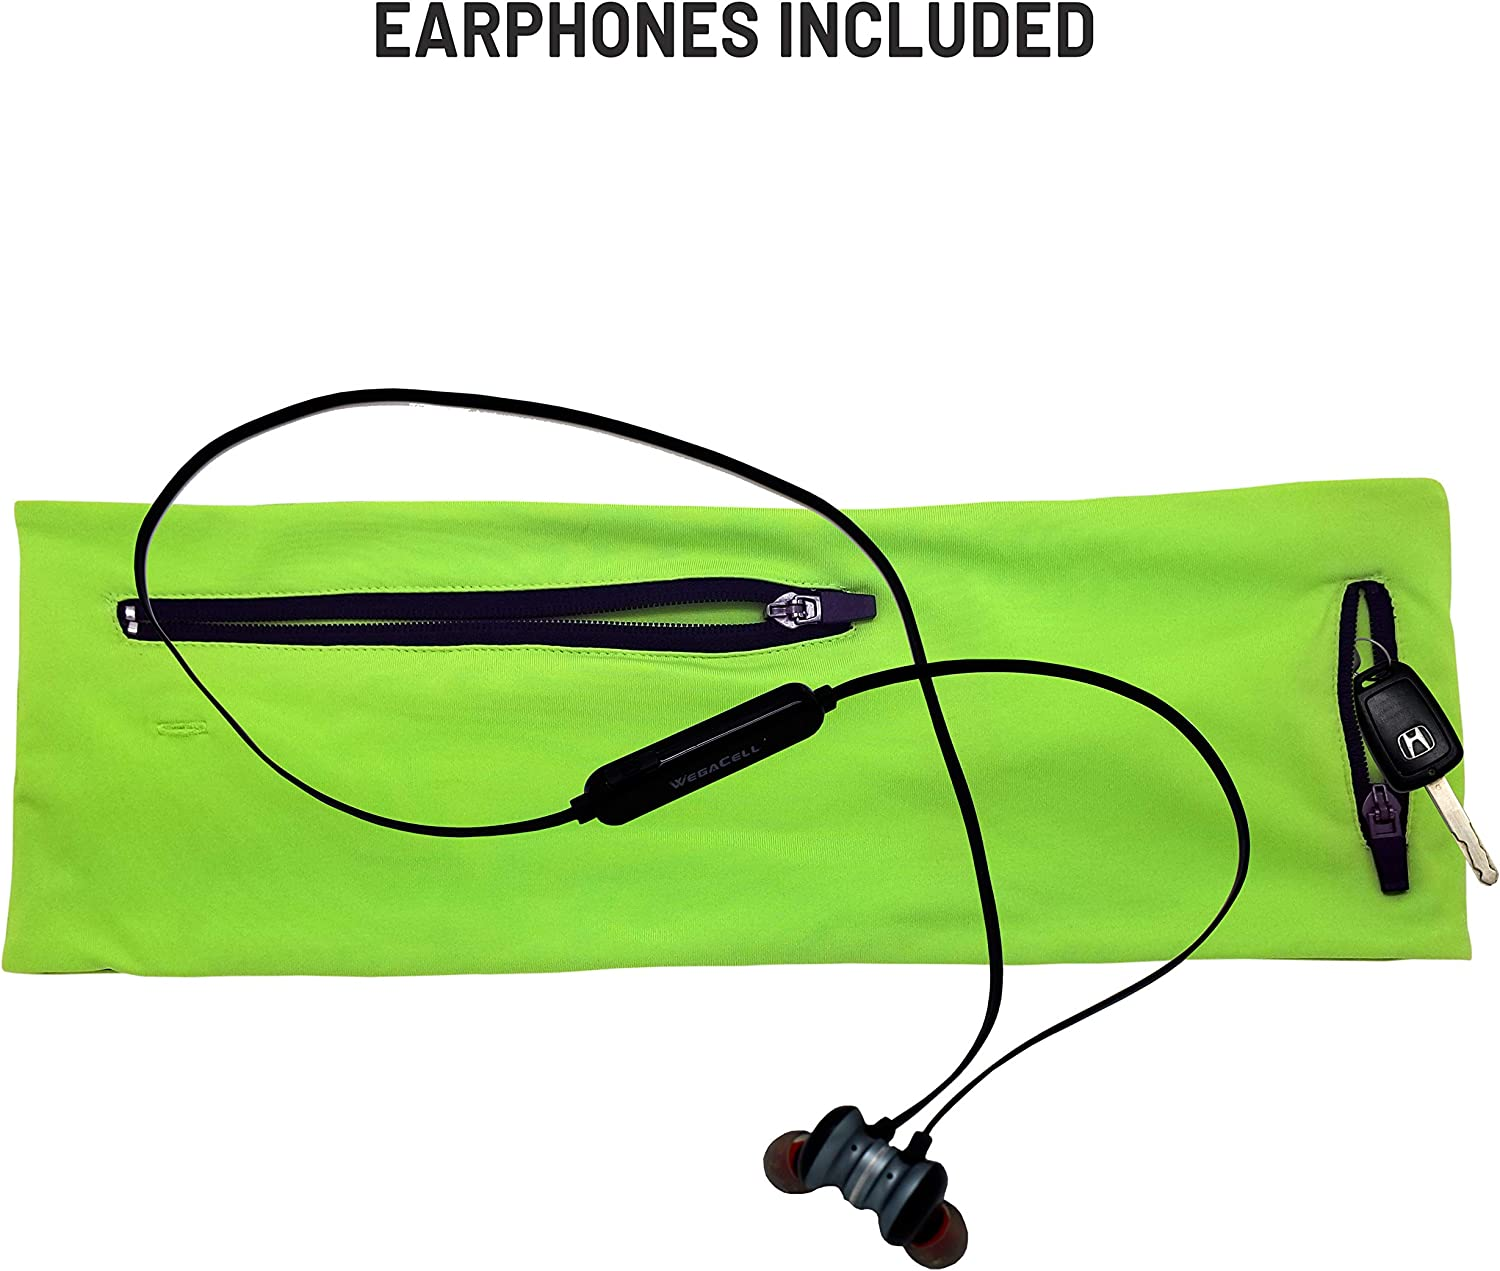 Hips-sister Walking Belt and Bluetooth Earphones Combo 2 Large 1 Small Zipper Pockets Fits Phones Keys Money and More Exercise Running Belt Fanny and Waist Pack